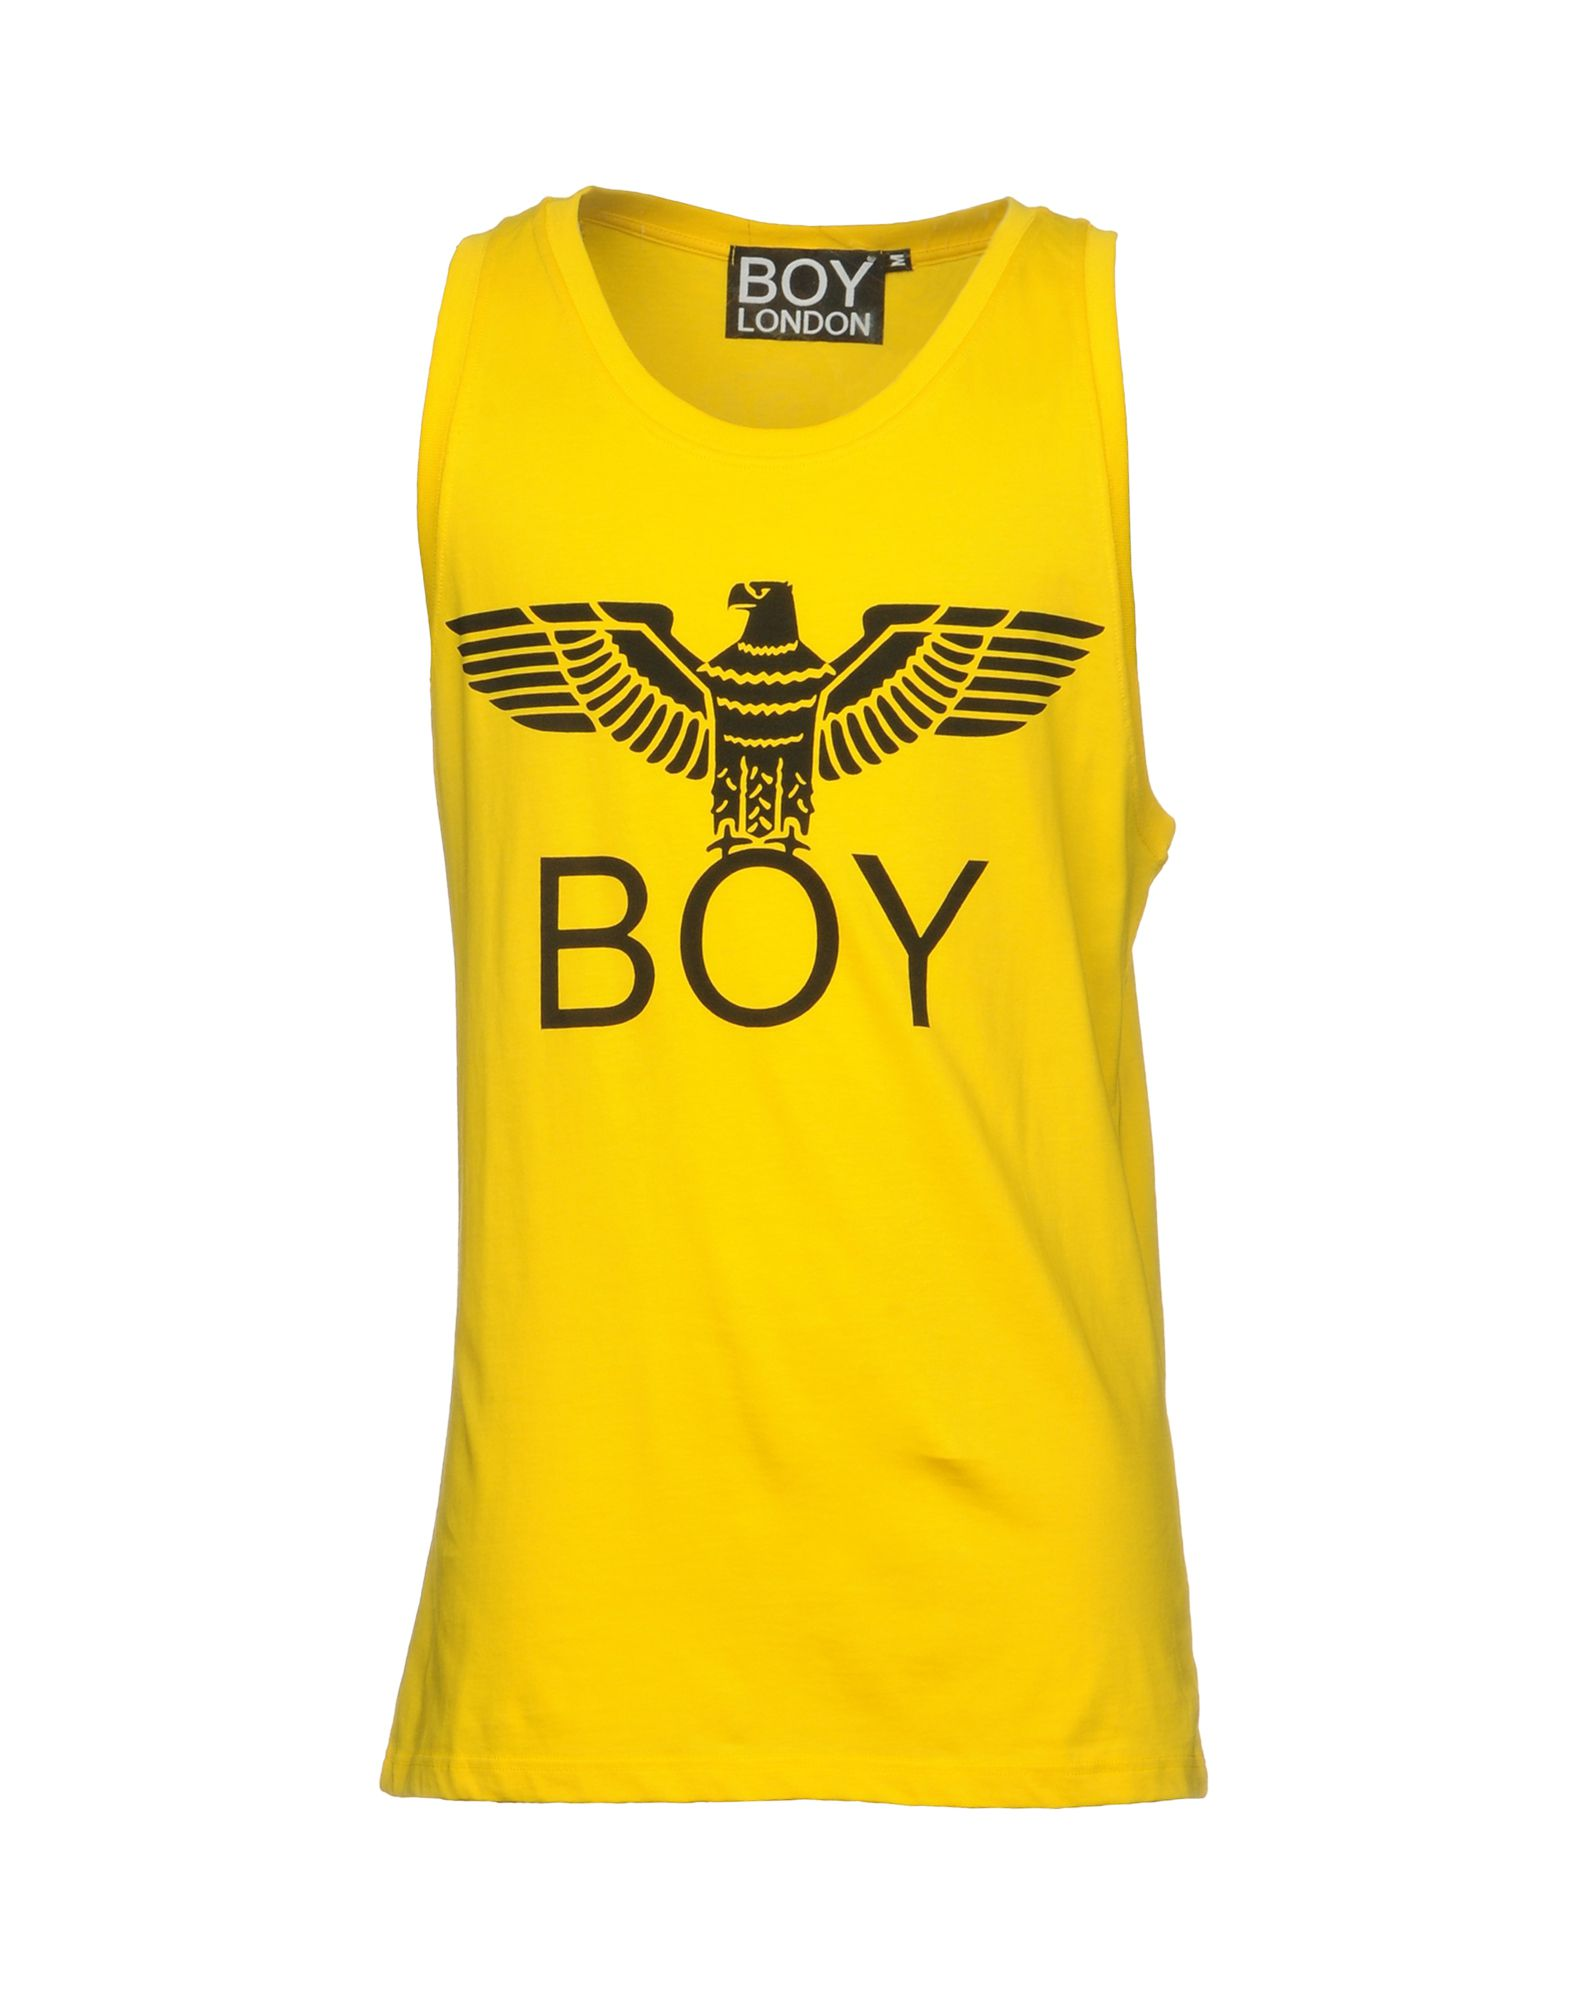 BOY LONDON Tank tops